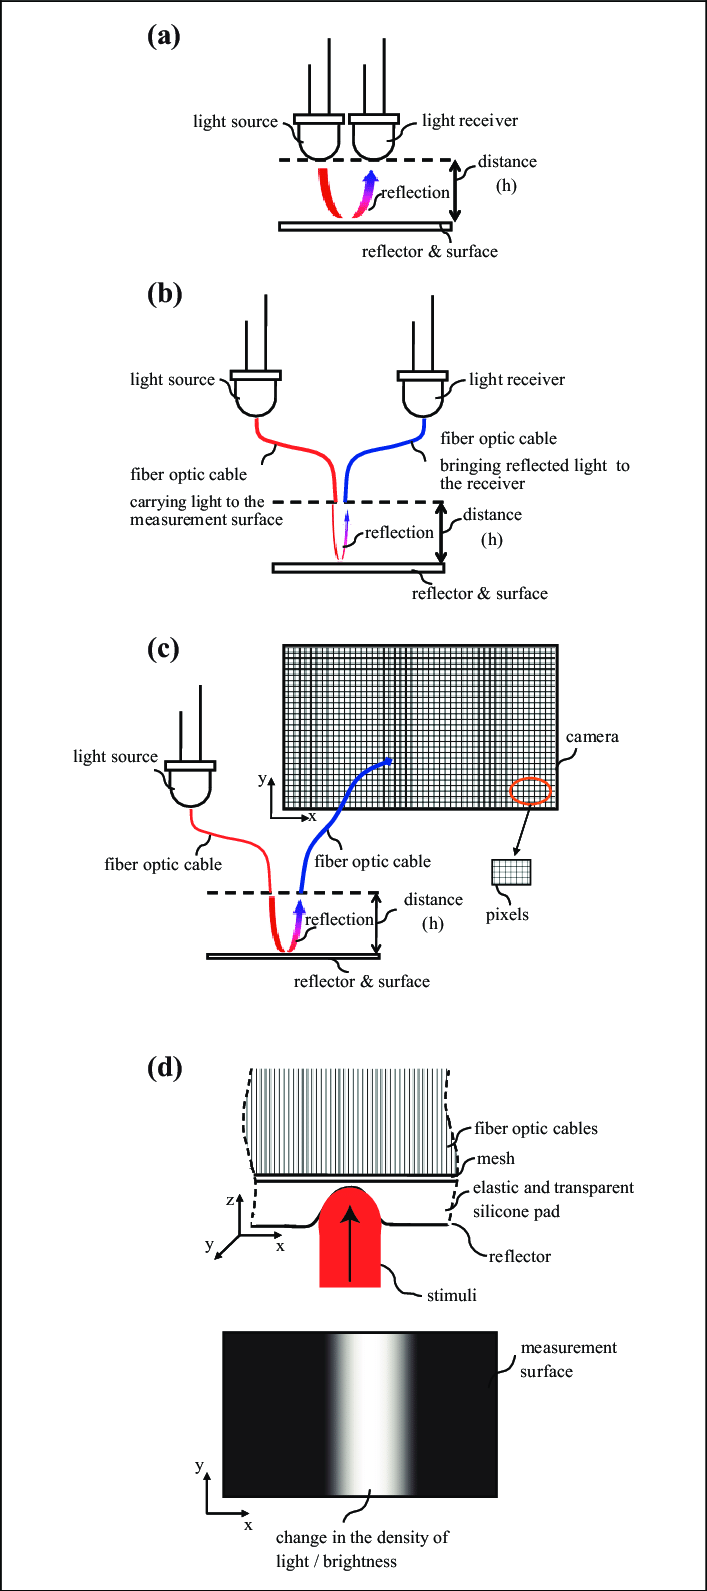 medium resolution of change in the light intensity illuminance when there is a stimulus download scientific diagram